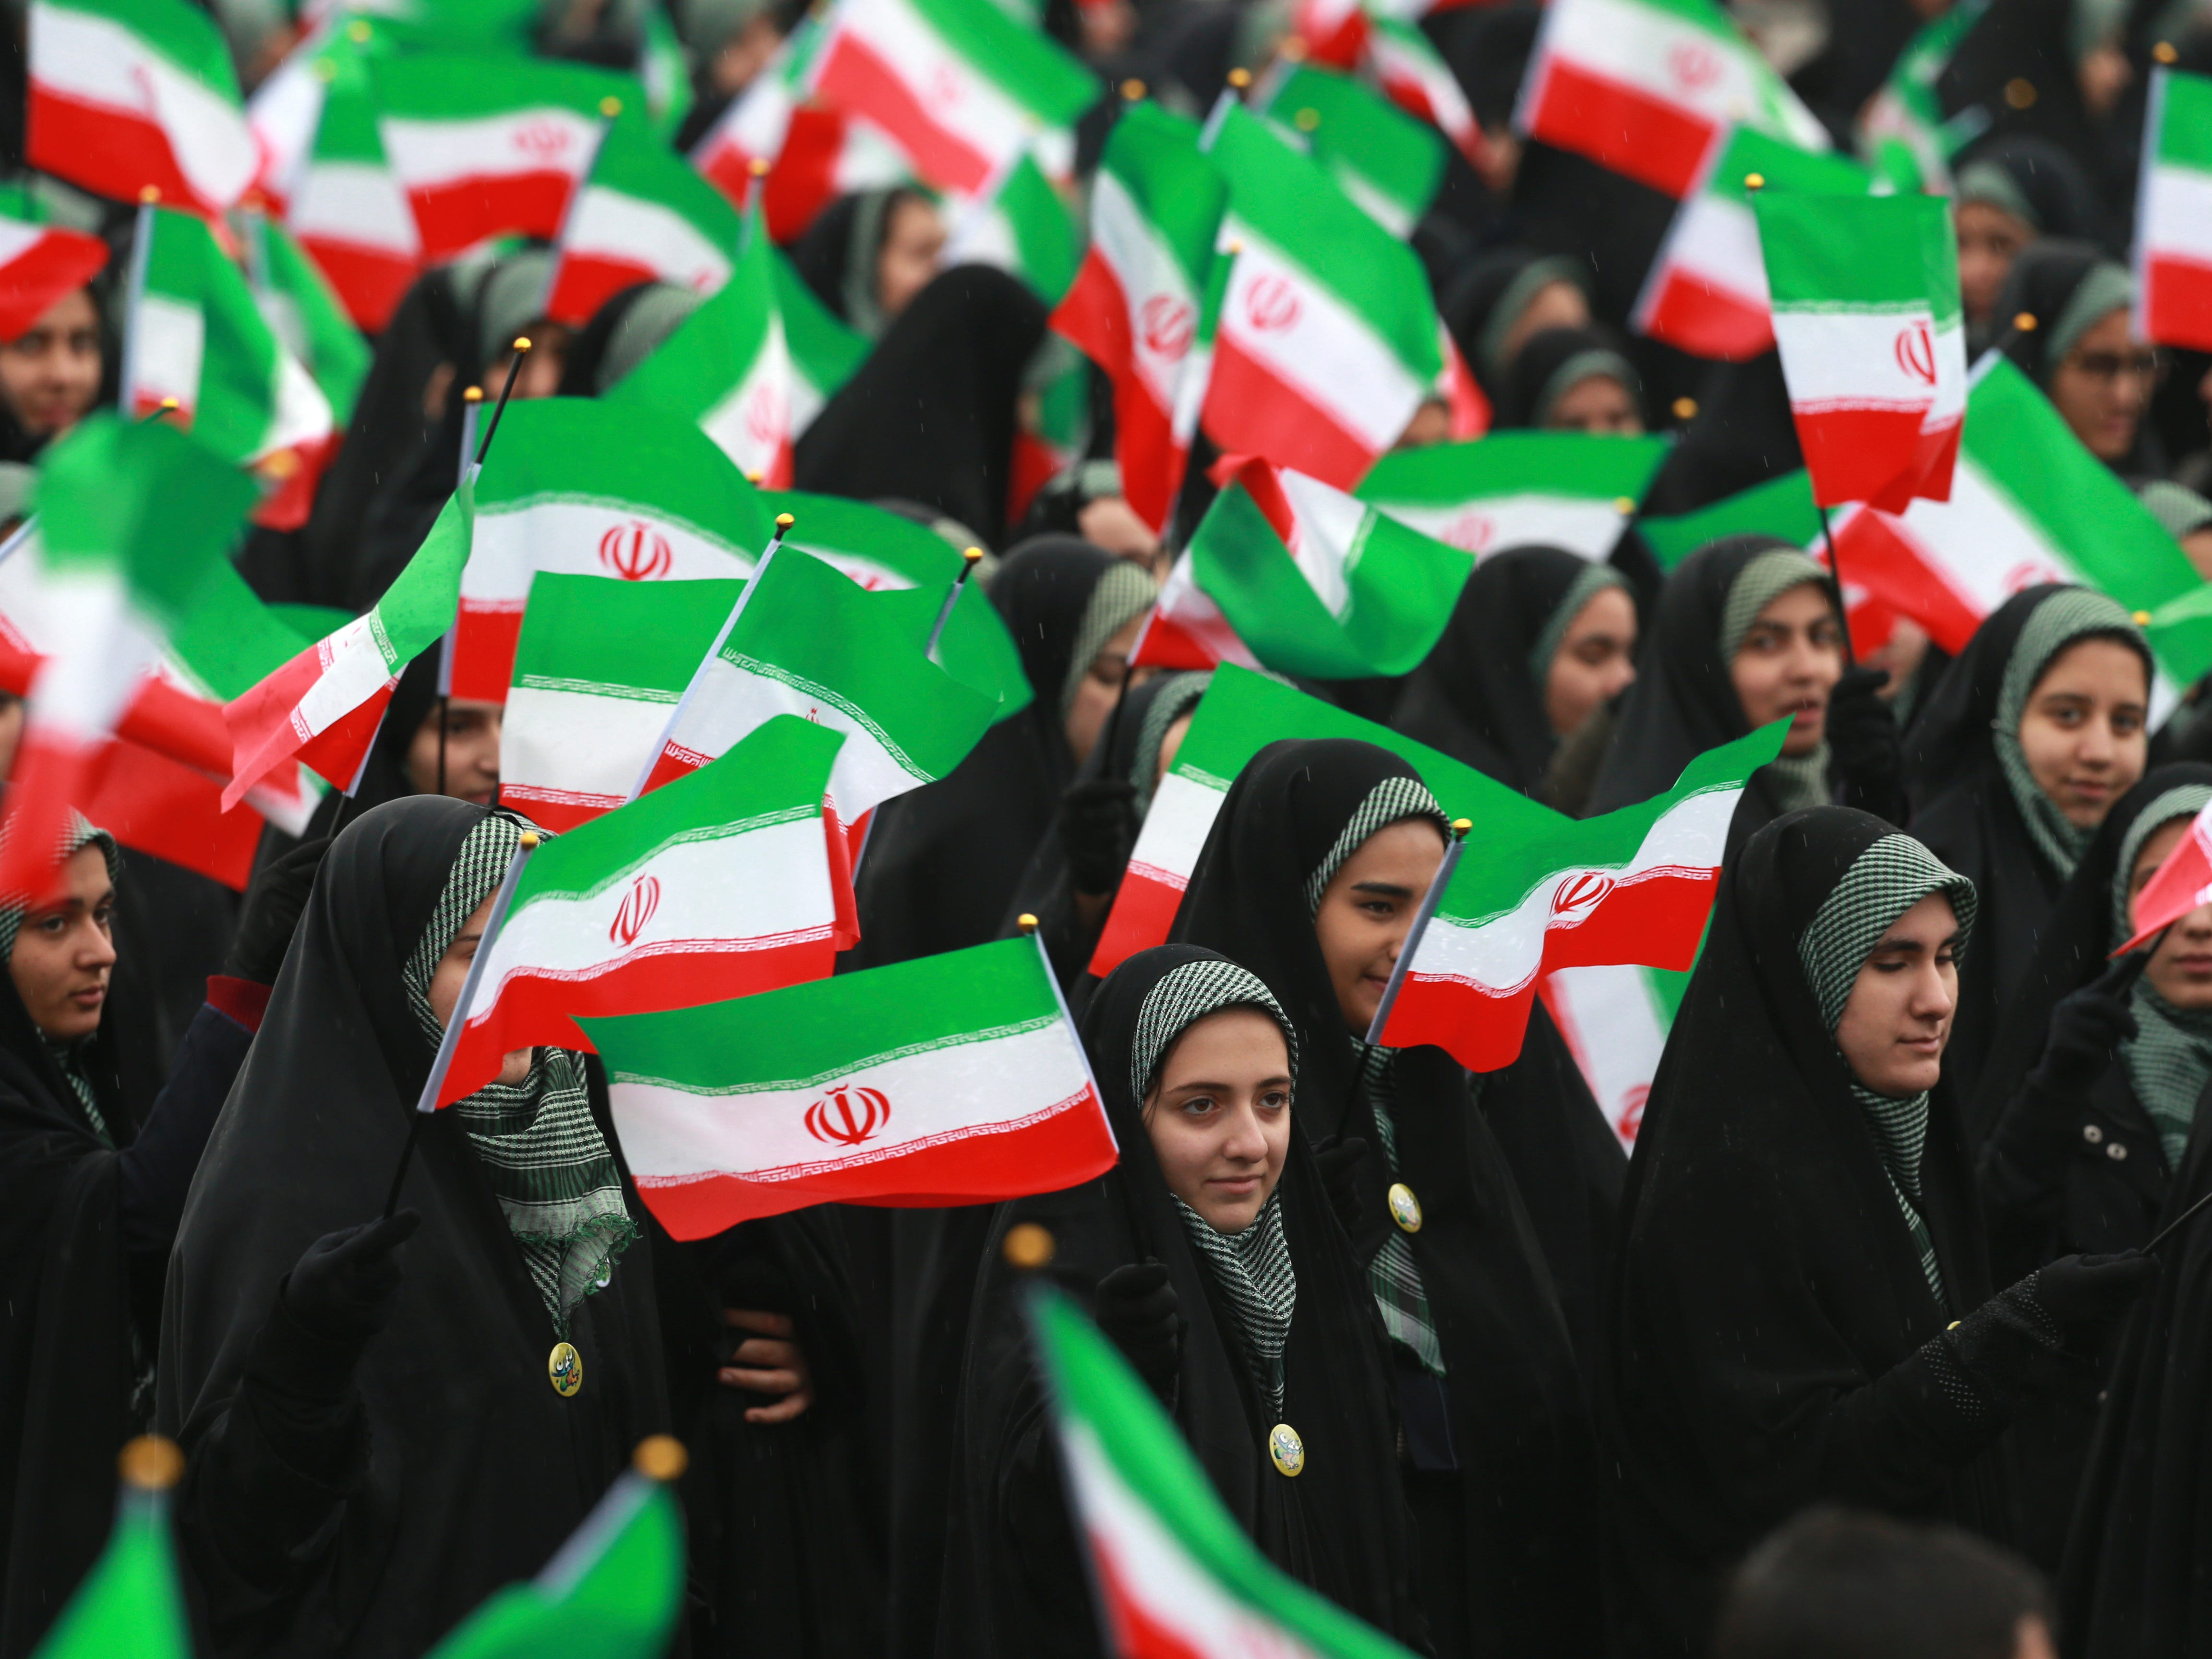 Iranians wave national flags during a ceremony celebrating the 40th anniversary of the Islamic Revolution, at the Azadi, or Freedom, Square, in Tehran on Monday, Feb. 11, 2019. On Feb. 11, 1979, Iran's military stood down after days of street battles, allowing the revolutionaries to sweep across the country, and the government of Shah Mohammad Reza Pahlavi resigned.